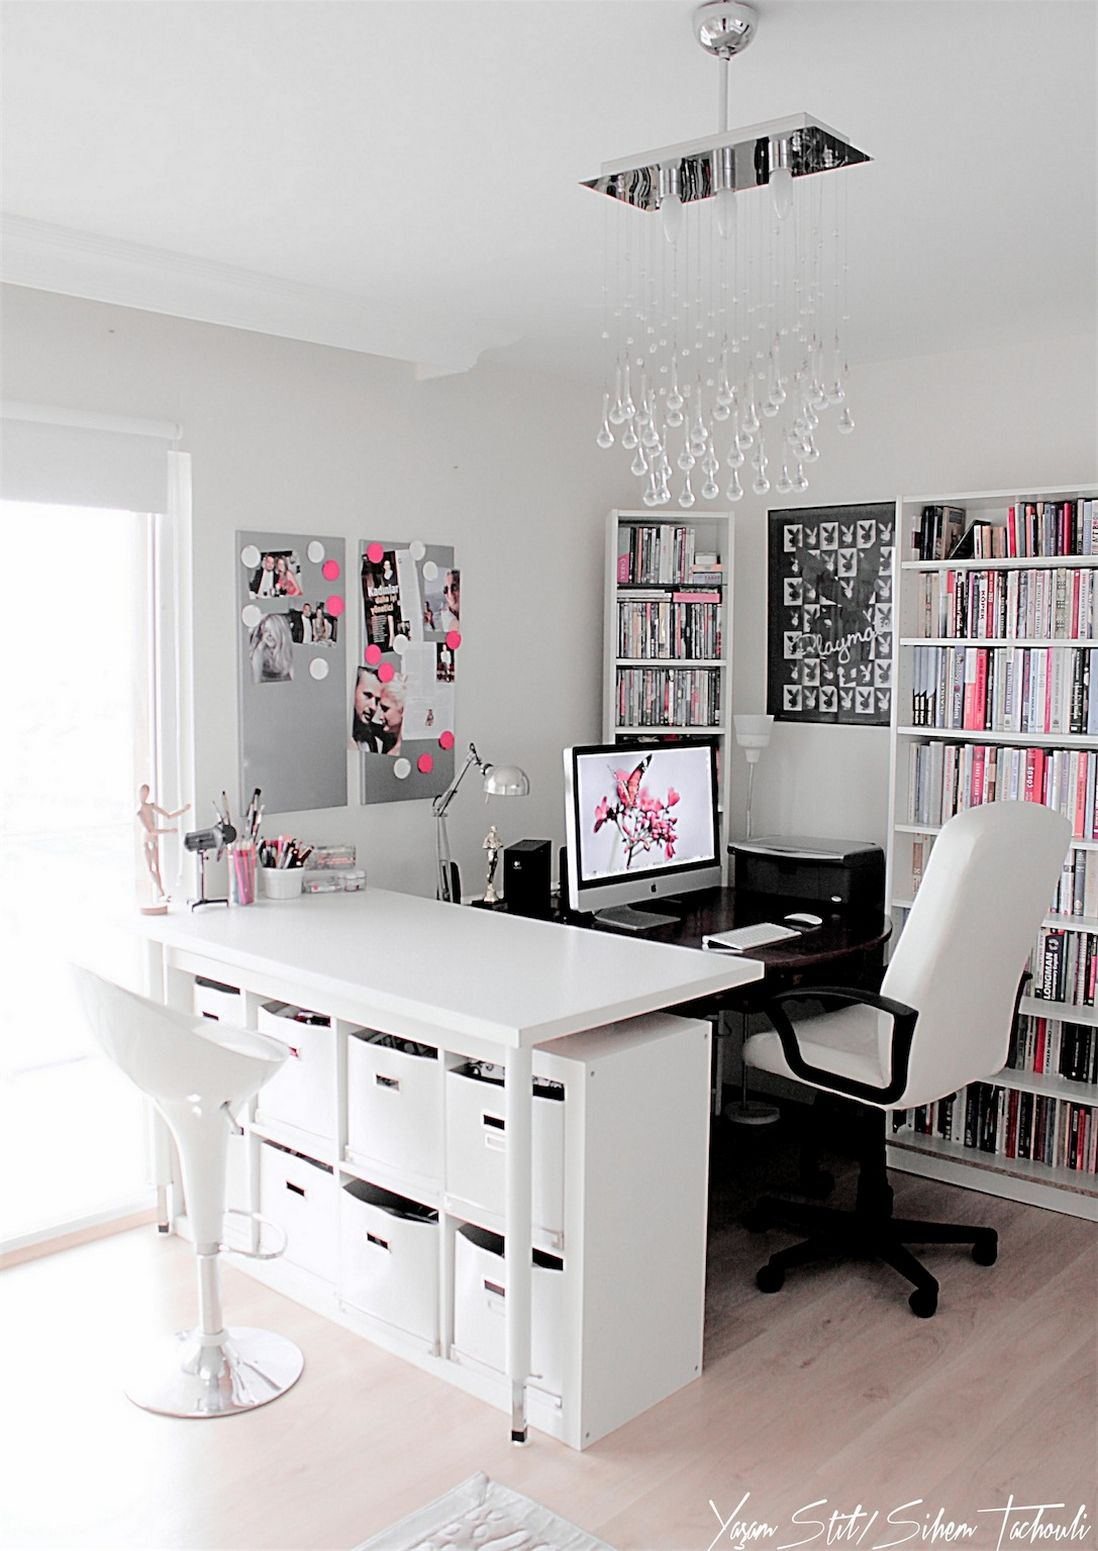 100 Cool Small Home Office Ideas, Remodel and Decor | Room, Office ...